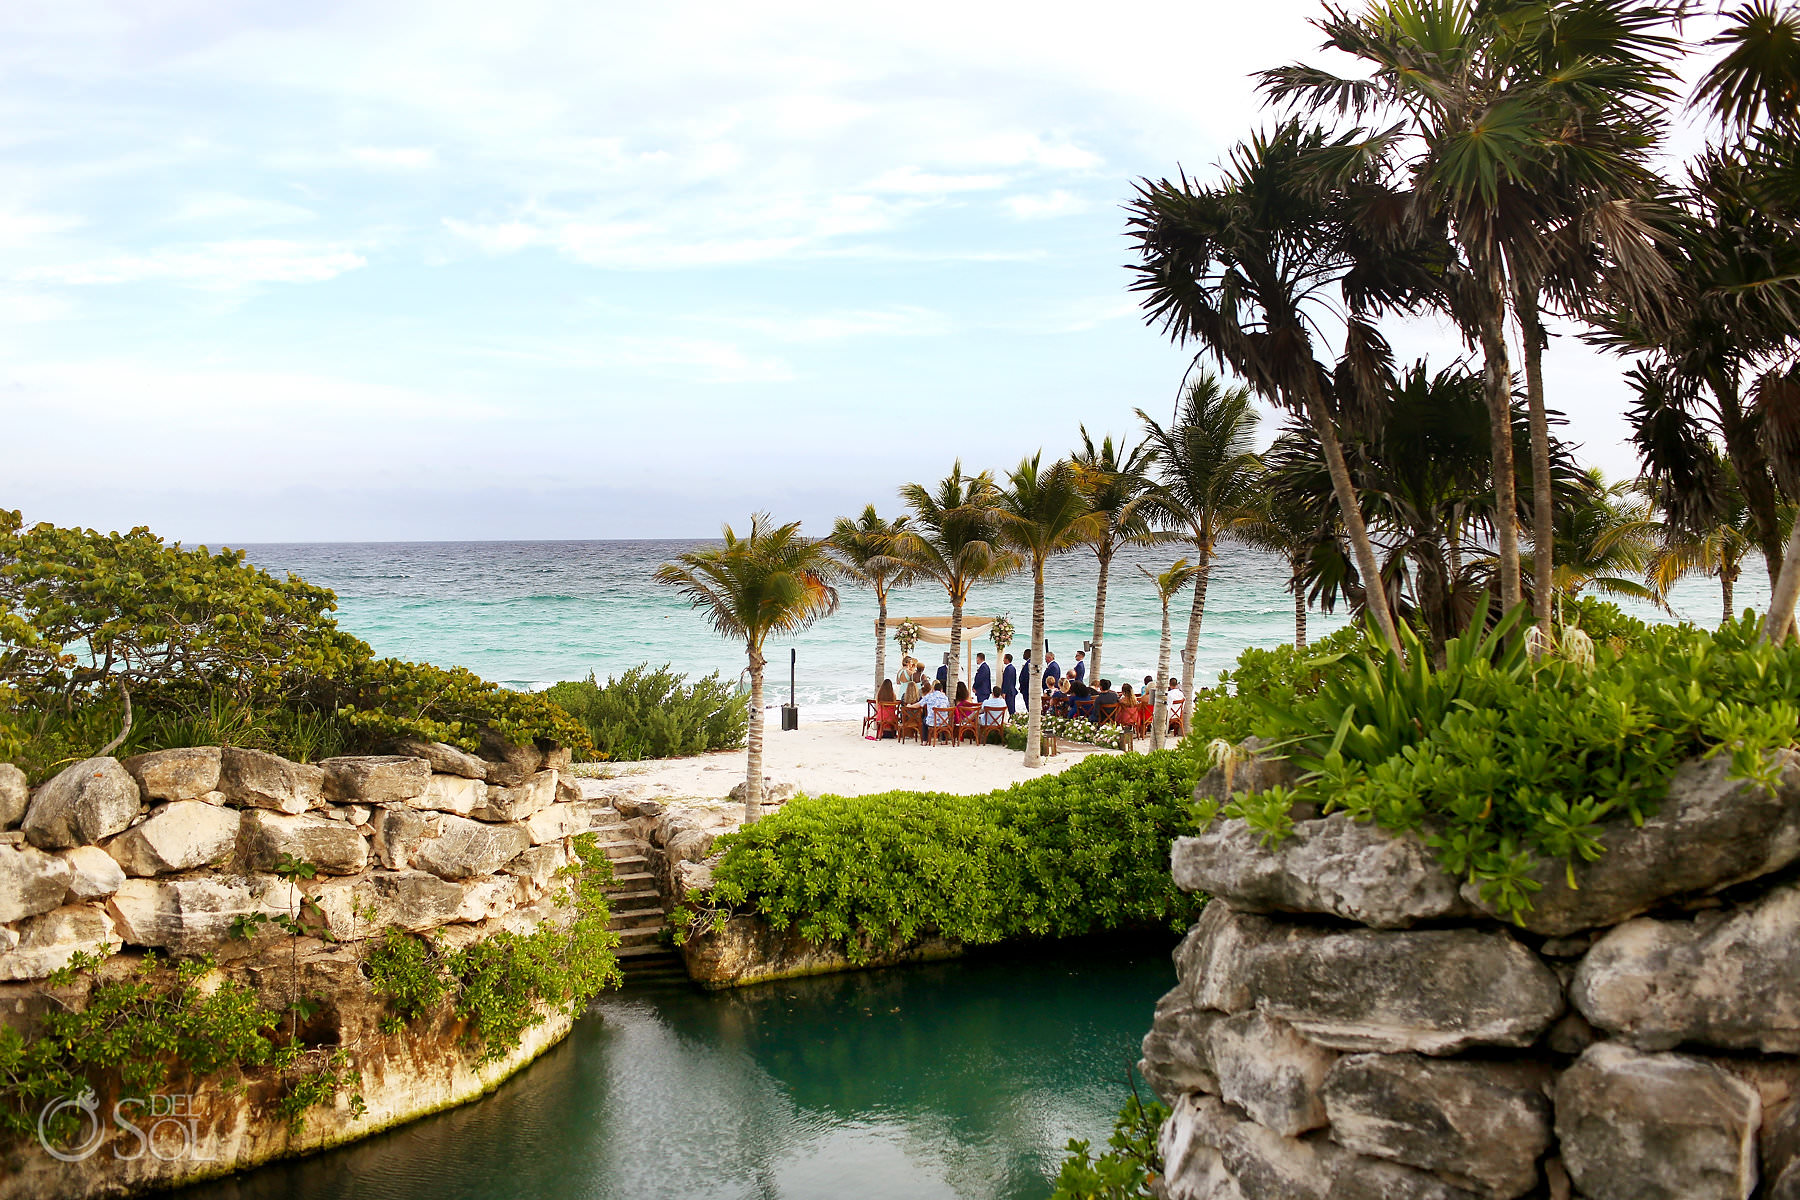 Best private beach wedding location Playa UK Hotel Xcaret Playa del Carmen Mexico